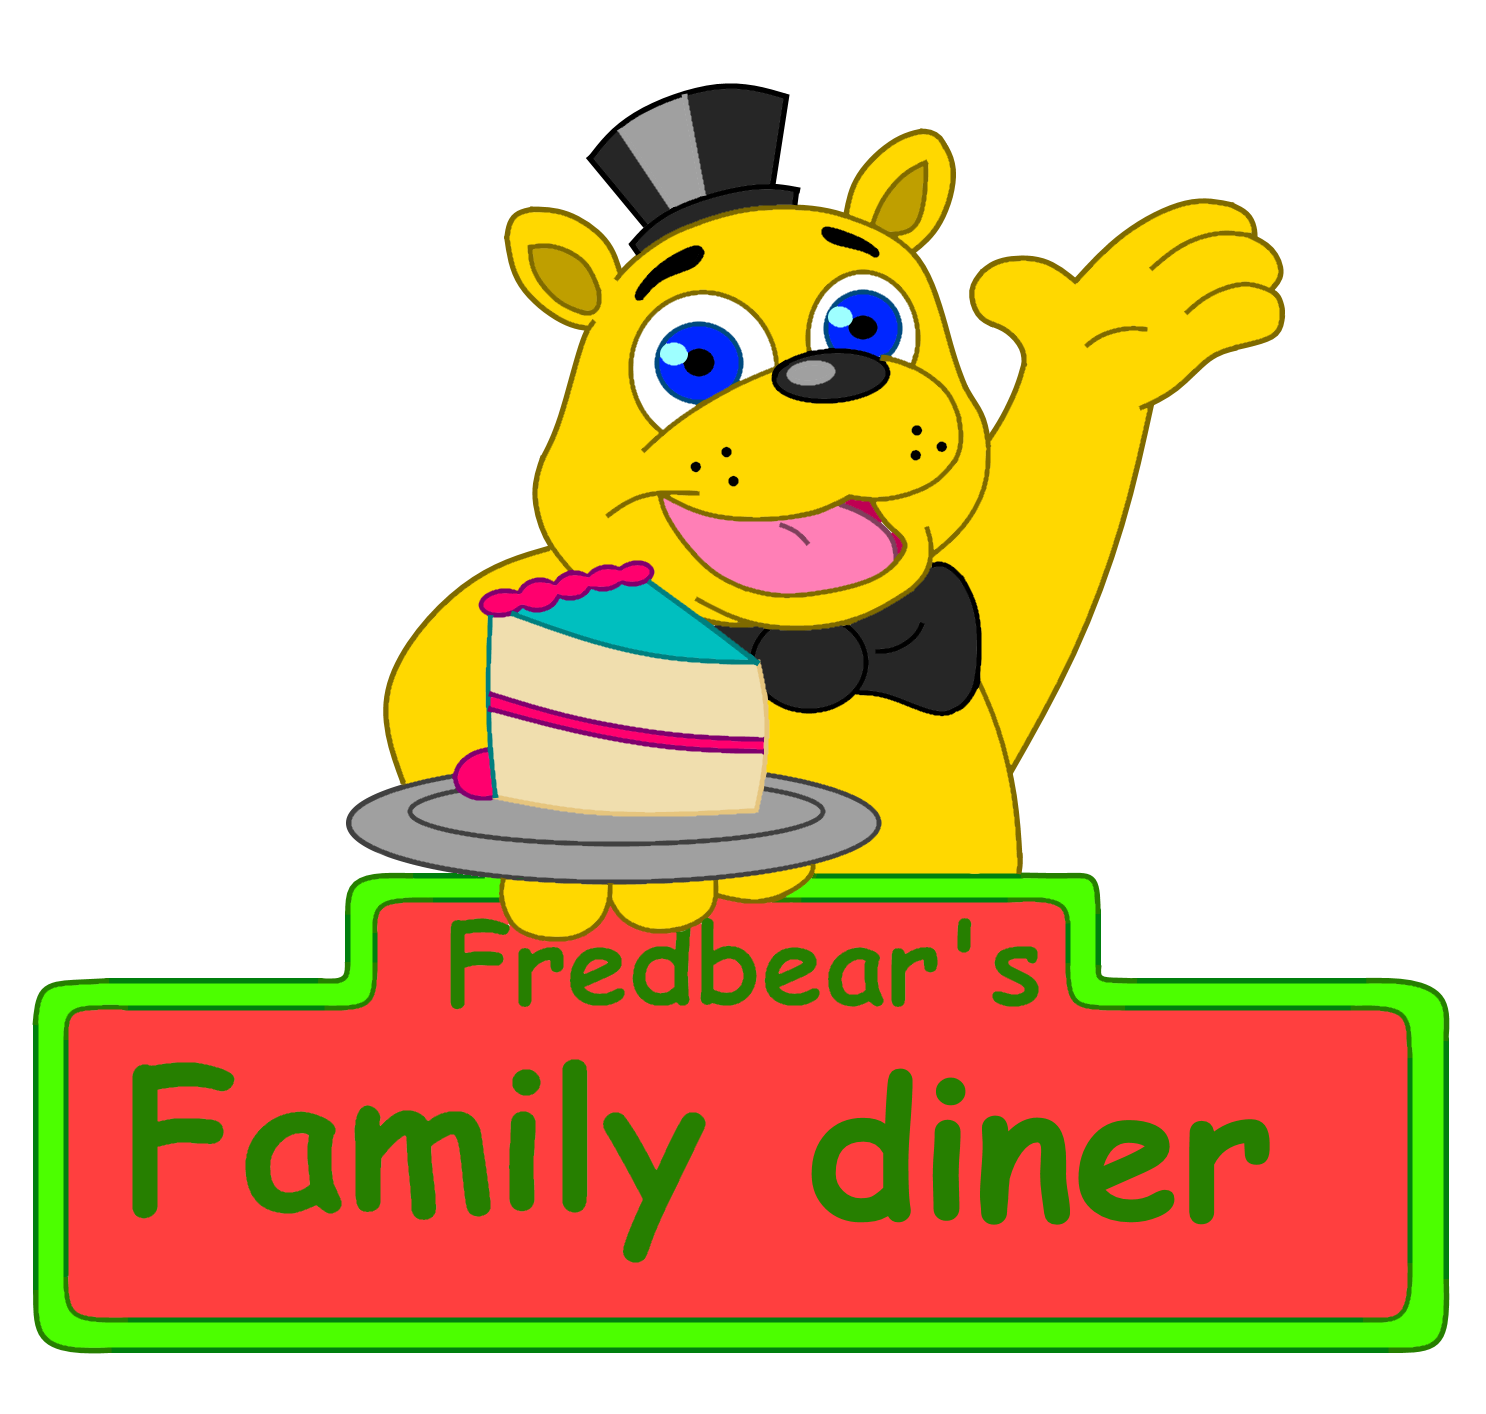 Fredbears family diner by boutin2009 on deviantart for Family diner